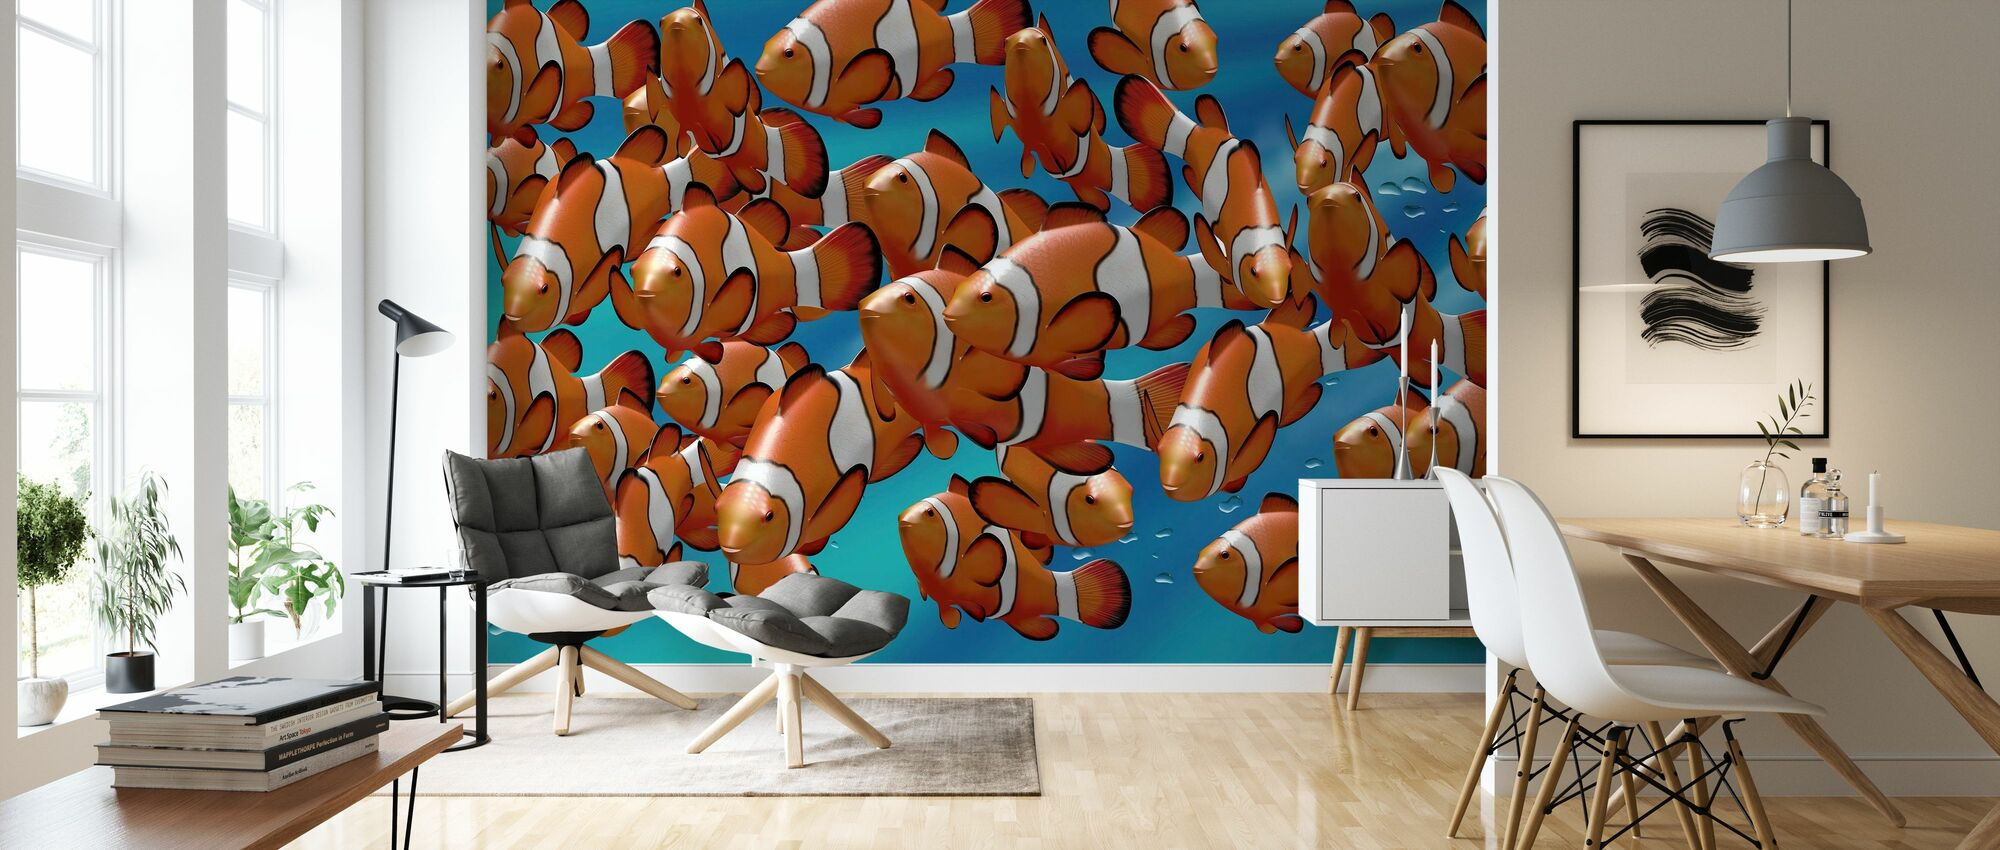 Clown Fish - Wallpaper - Living Room